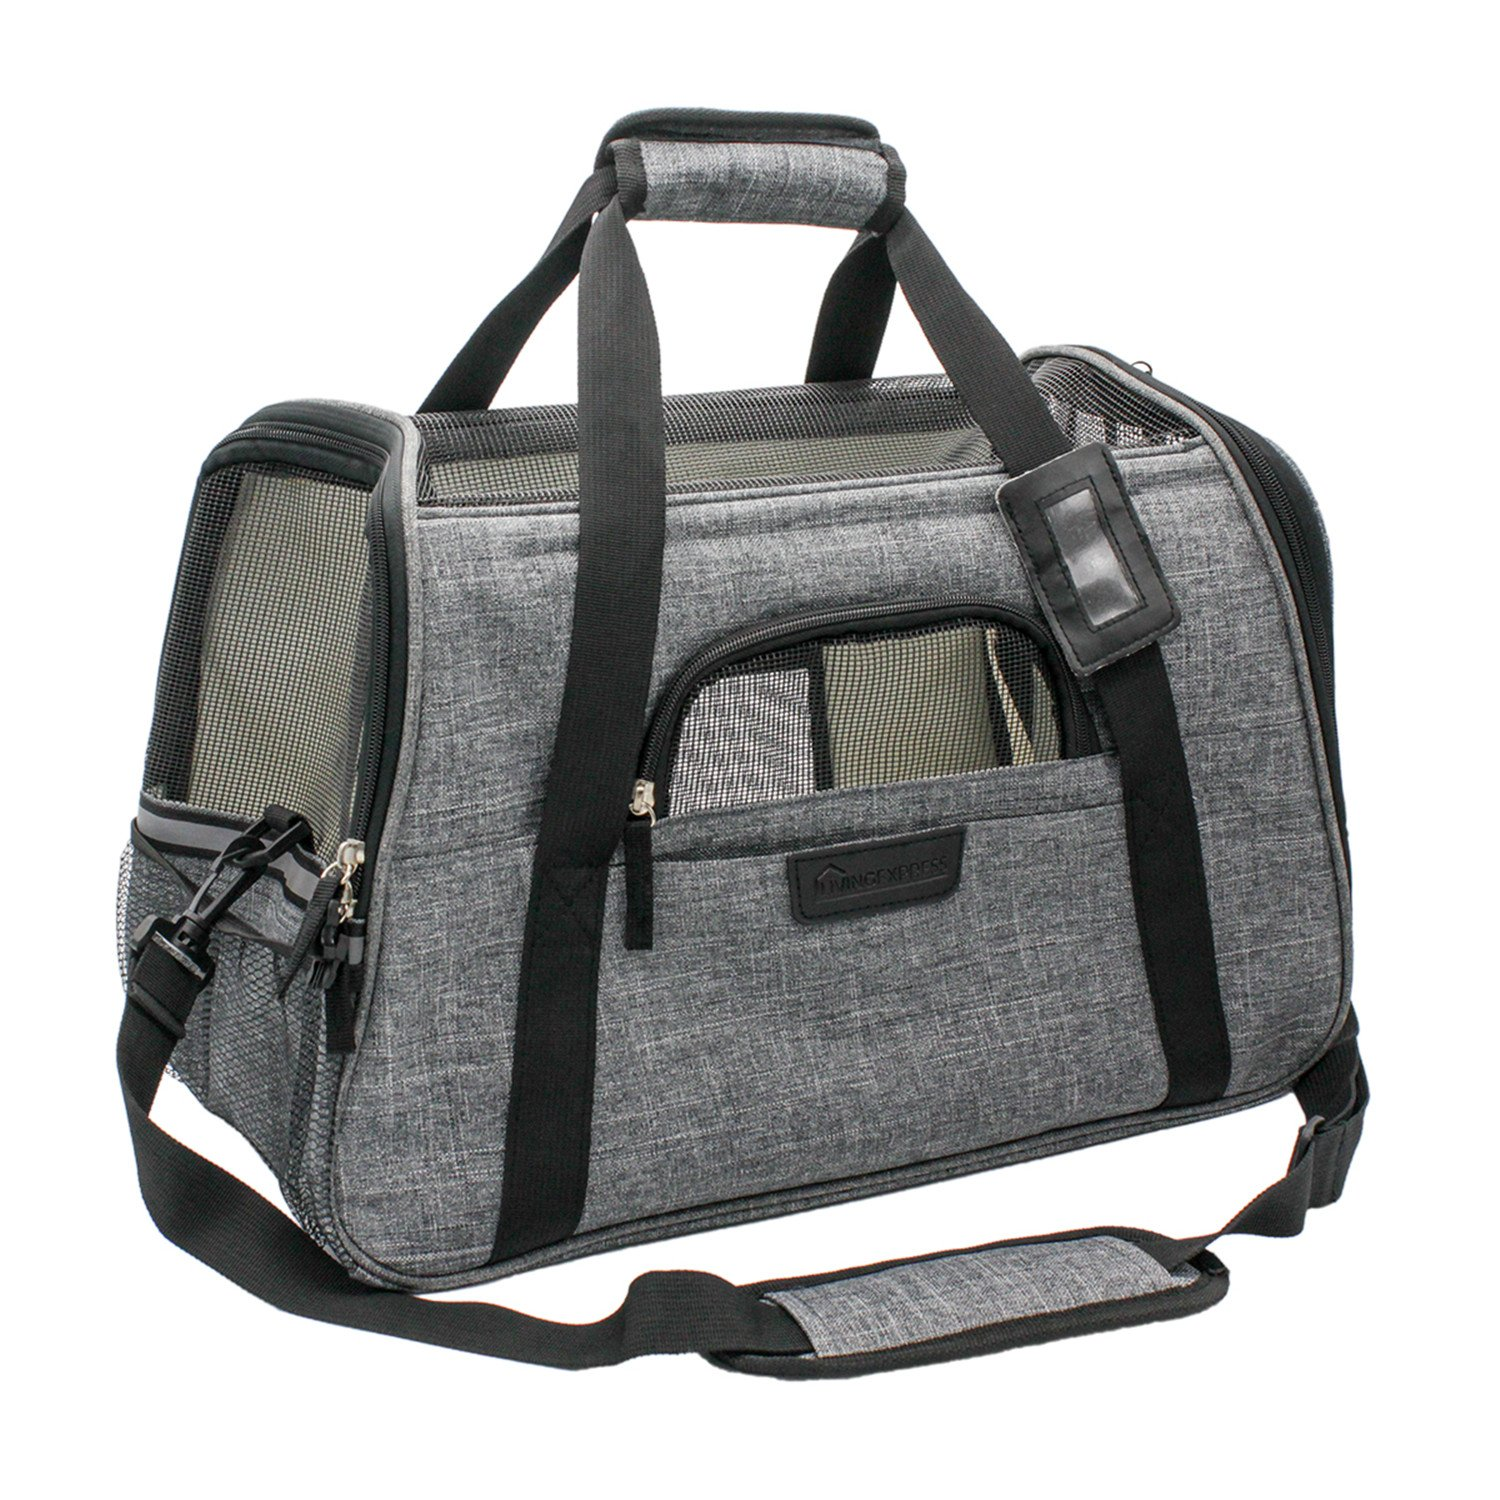 Airline Approved Pet Carriers, Soft Sided Portable Travel Bags with Fleece Padding, Airplane Pet Carrier Under Seat for Small Dog and Cat, Dogs Purses (Gray)